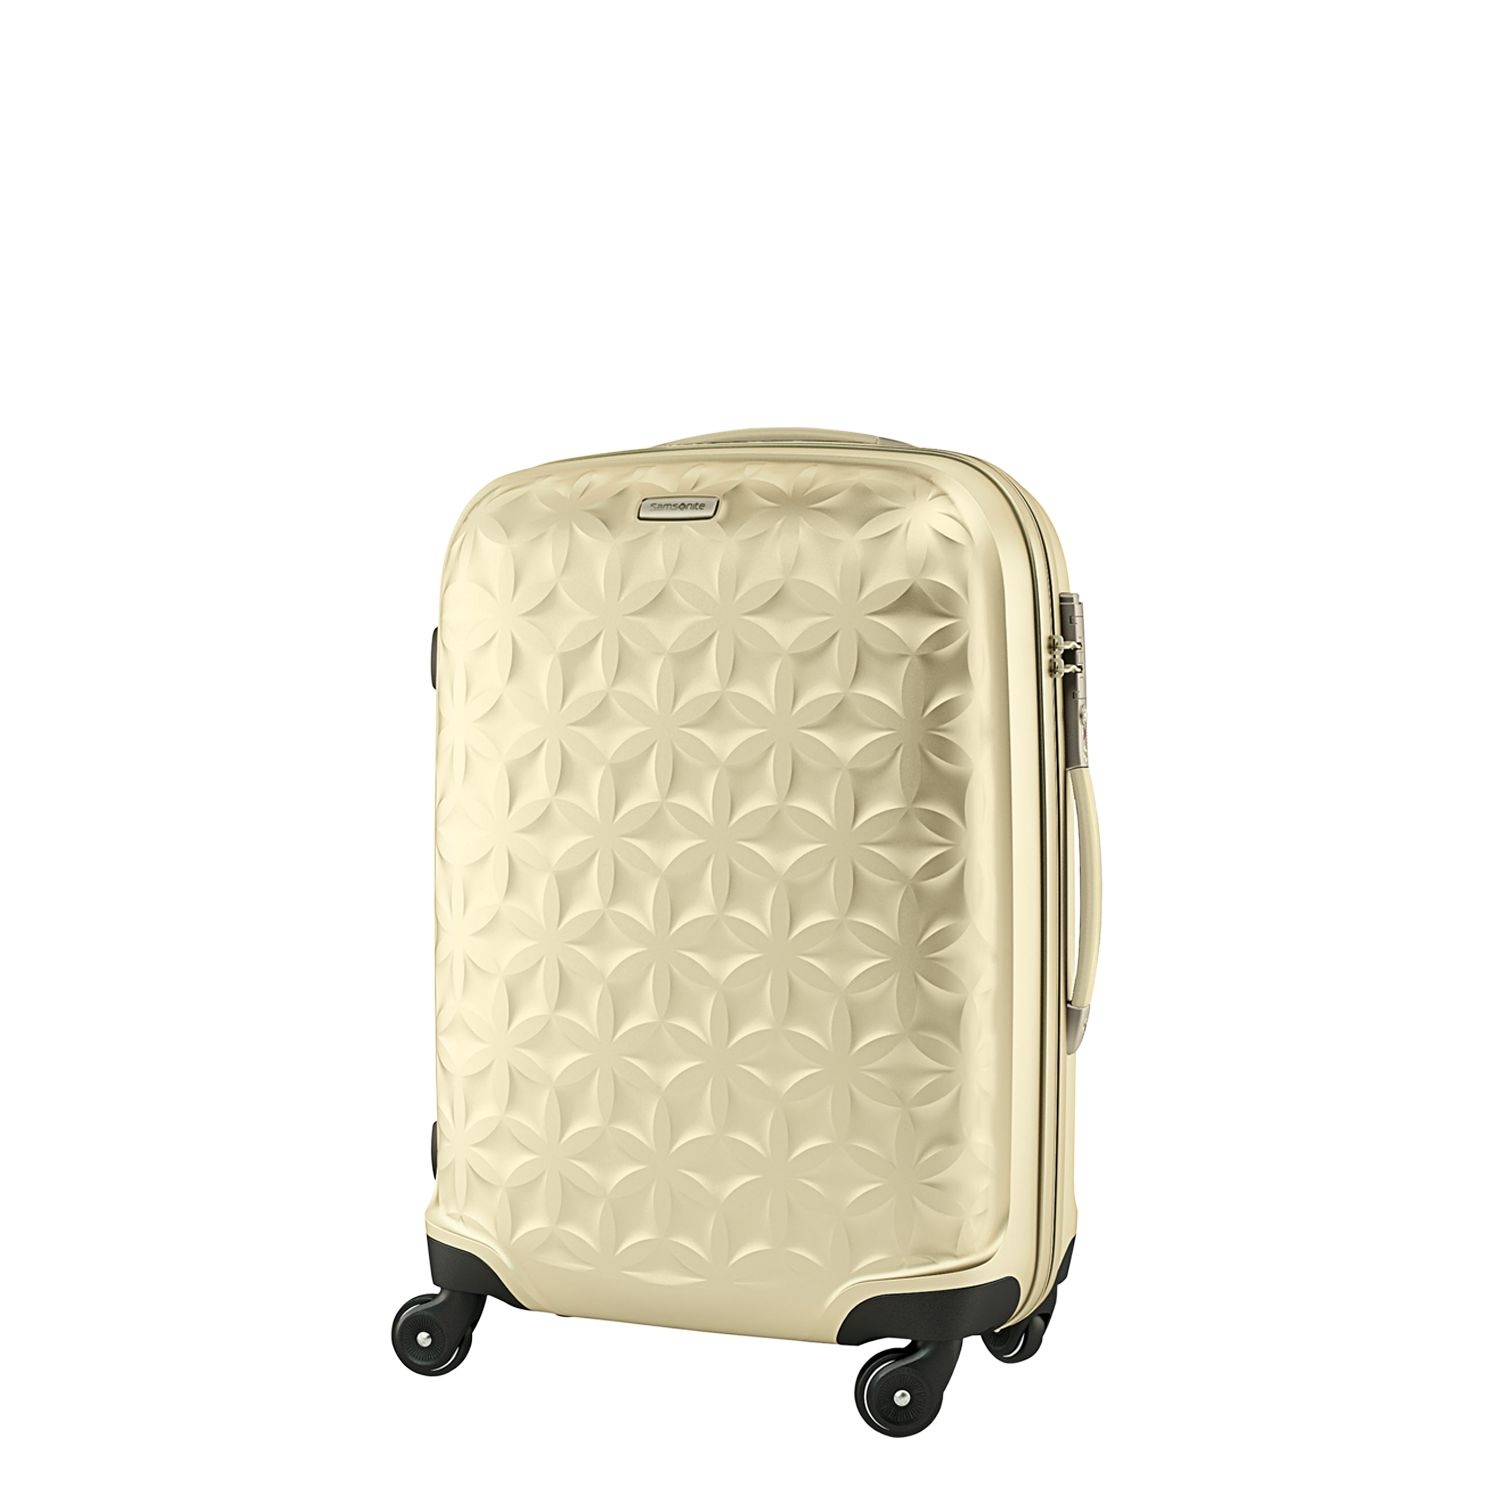 Samsonite Essensis 4-Wheel Spinner Suitcase, Ivory